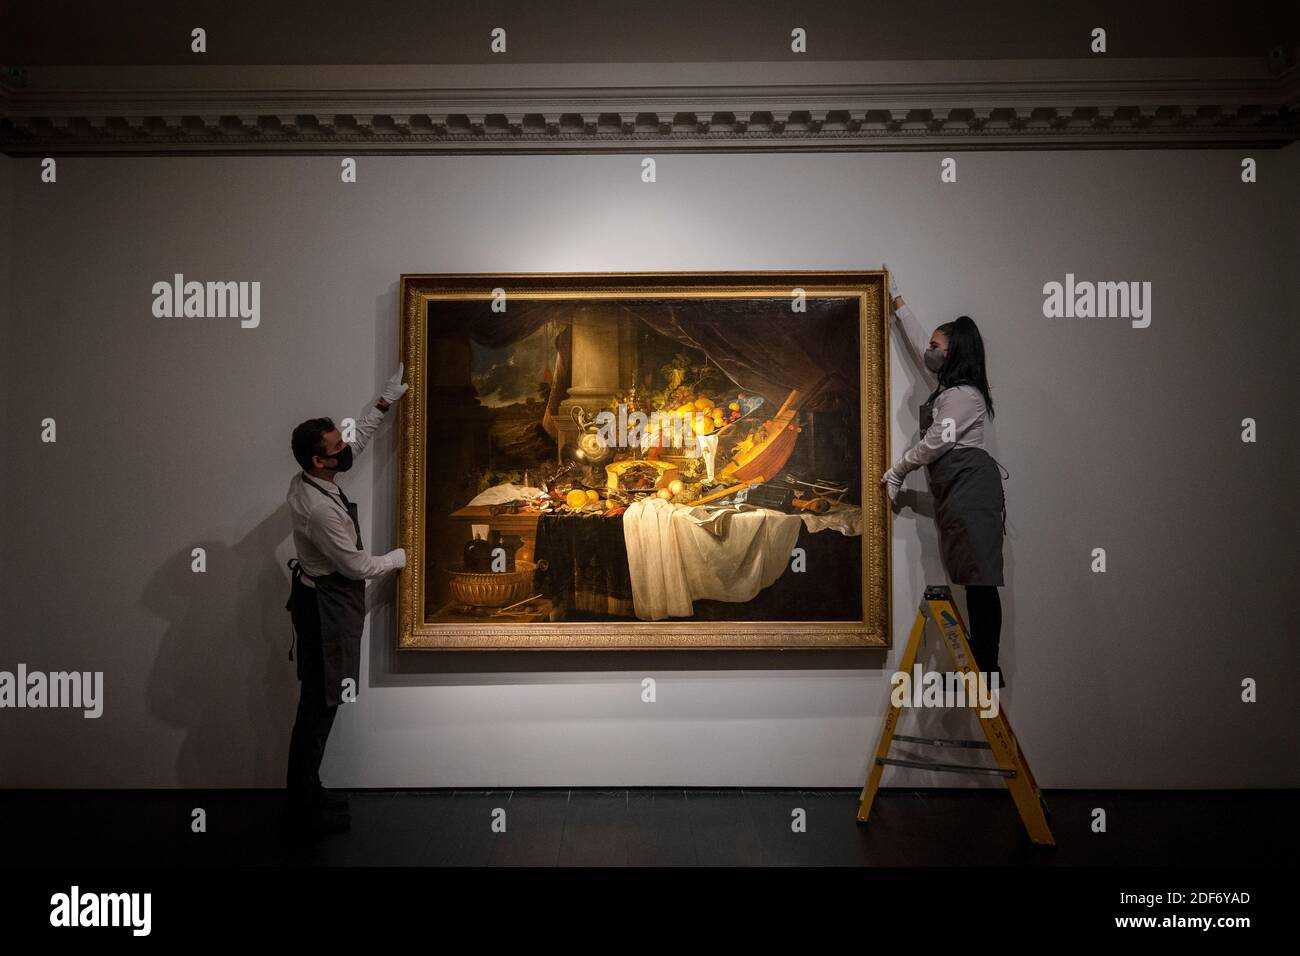 Gallery assistants adjust 'A banquet still life' by Jan Davidsz De Heem with an estimate of ??4-6 million, which is on show at Christie's saleroom in central London ahead of the auction house's forthcoming Classic Week sales. Stock Photo